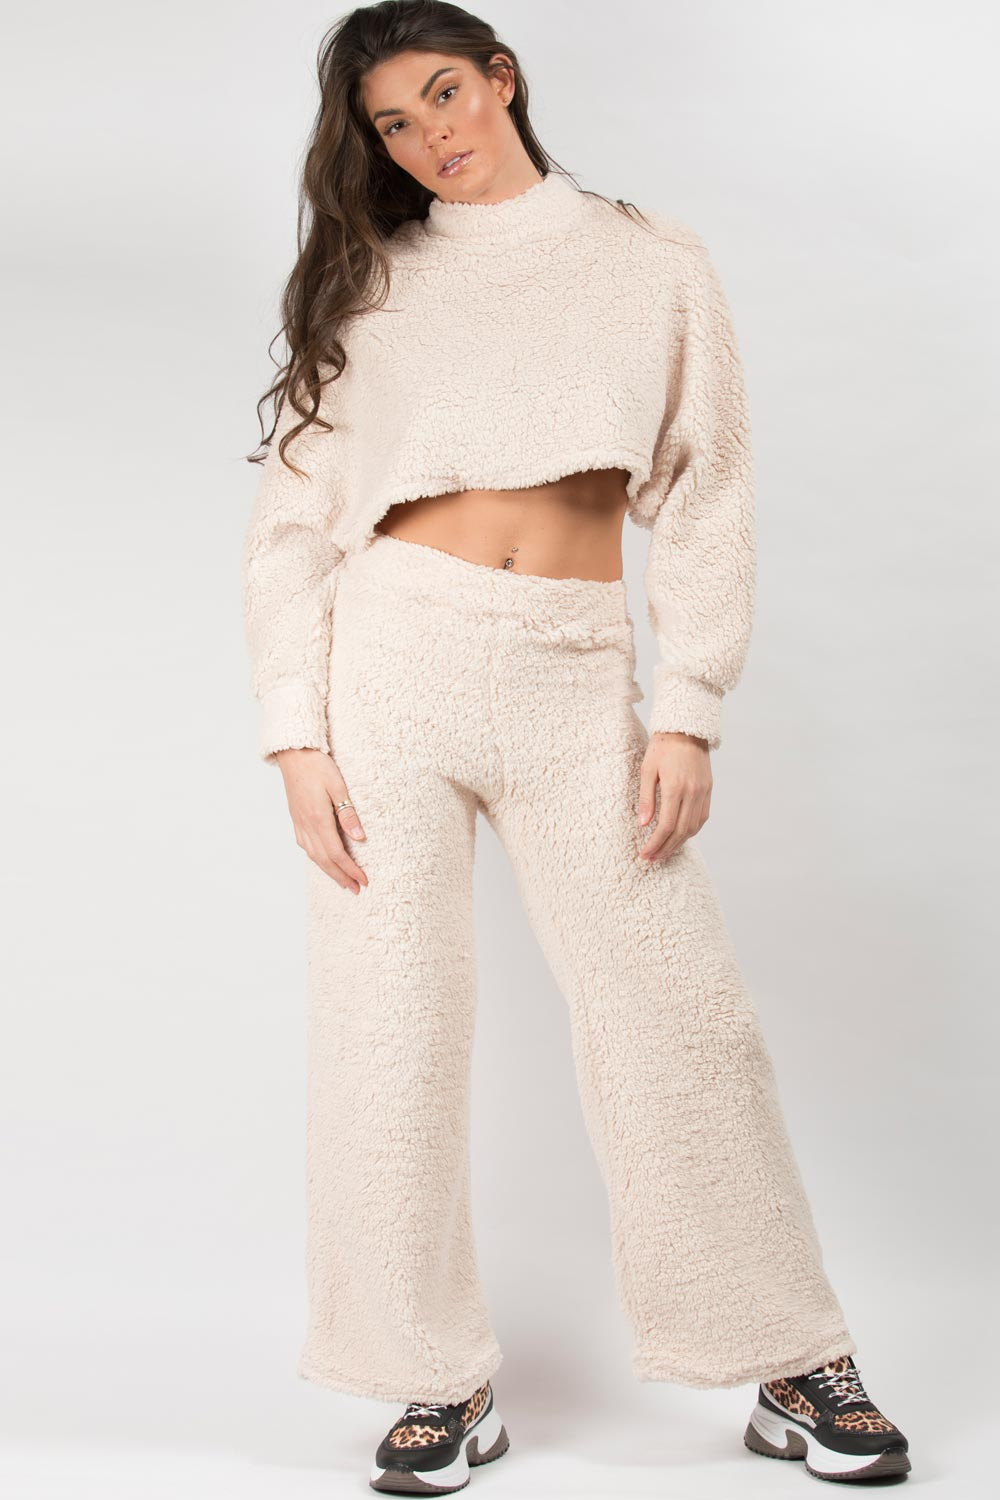 teddy bear trousers and crop top set